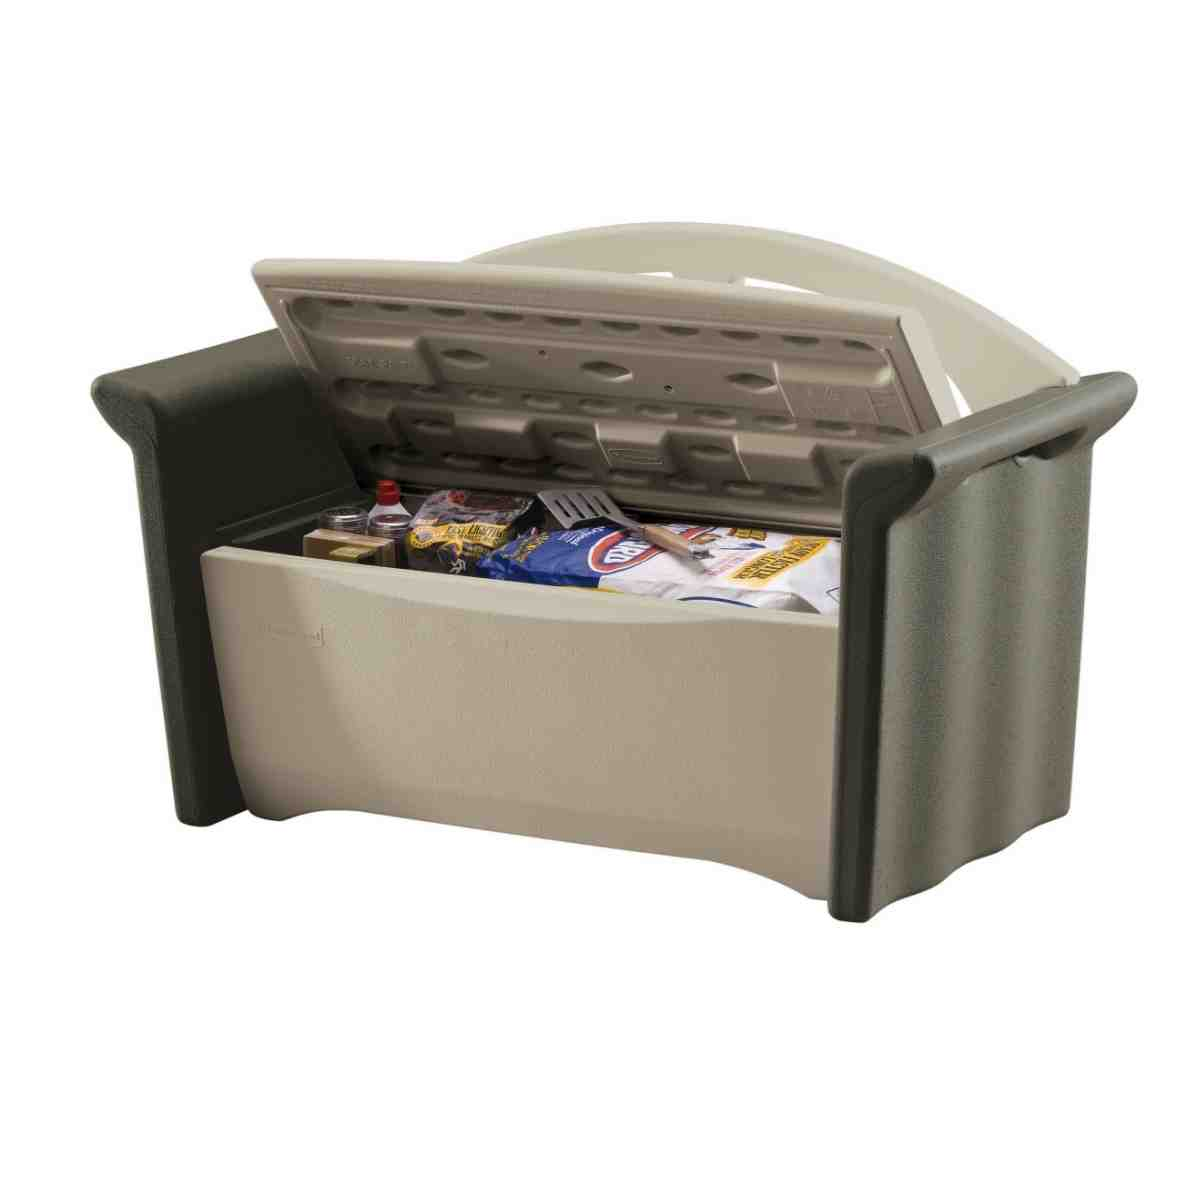 Rubbermaid Patio Storage Bench 3764 Home Furniture Design